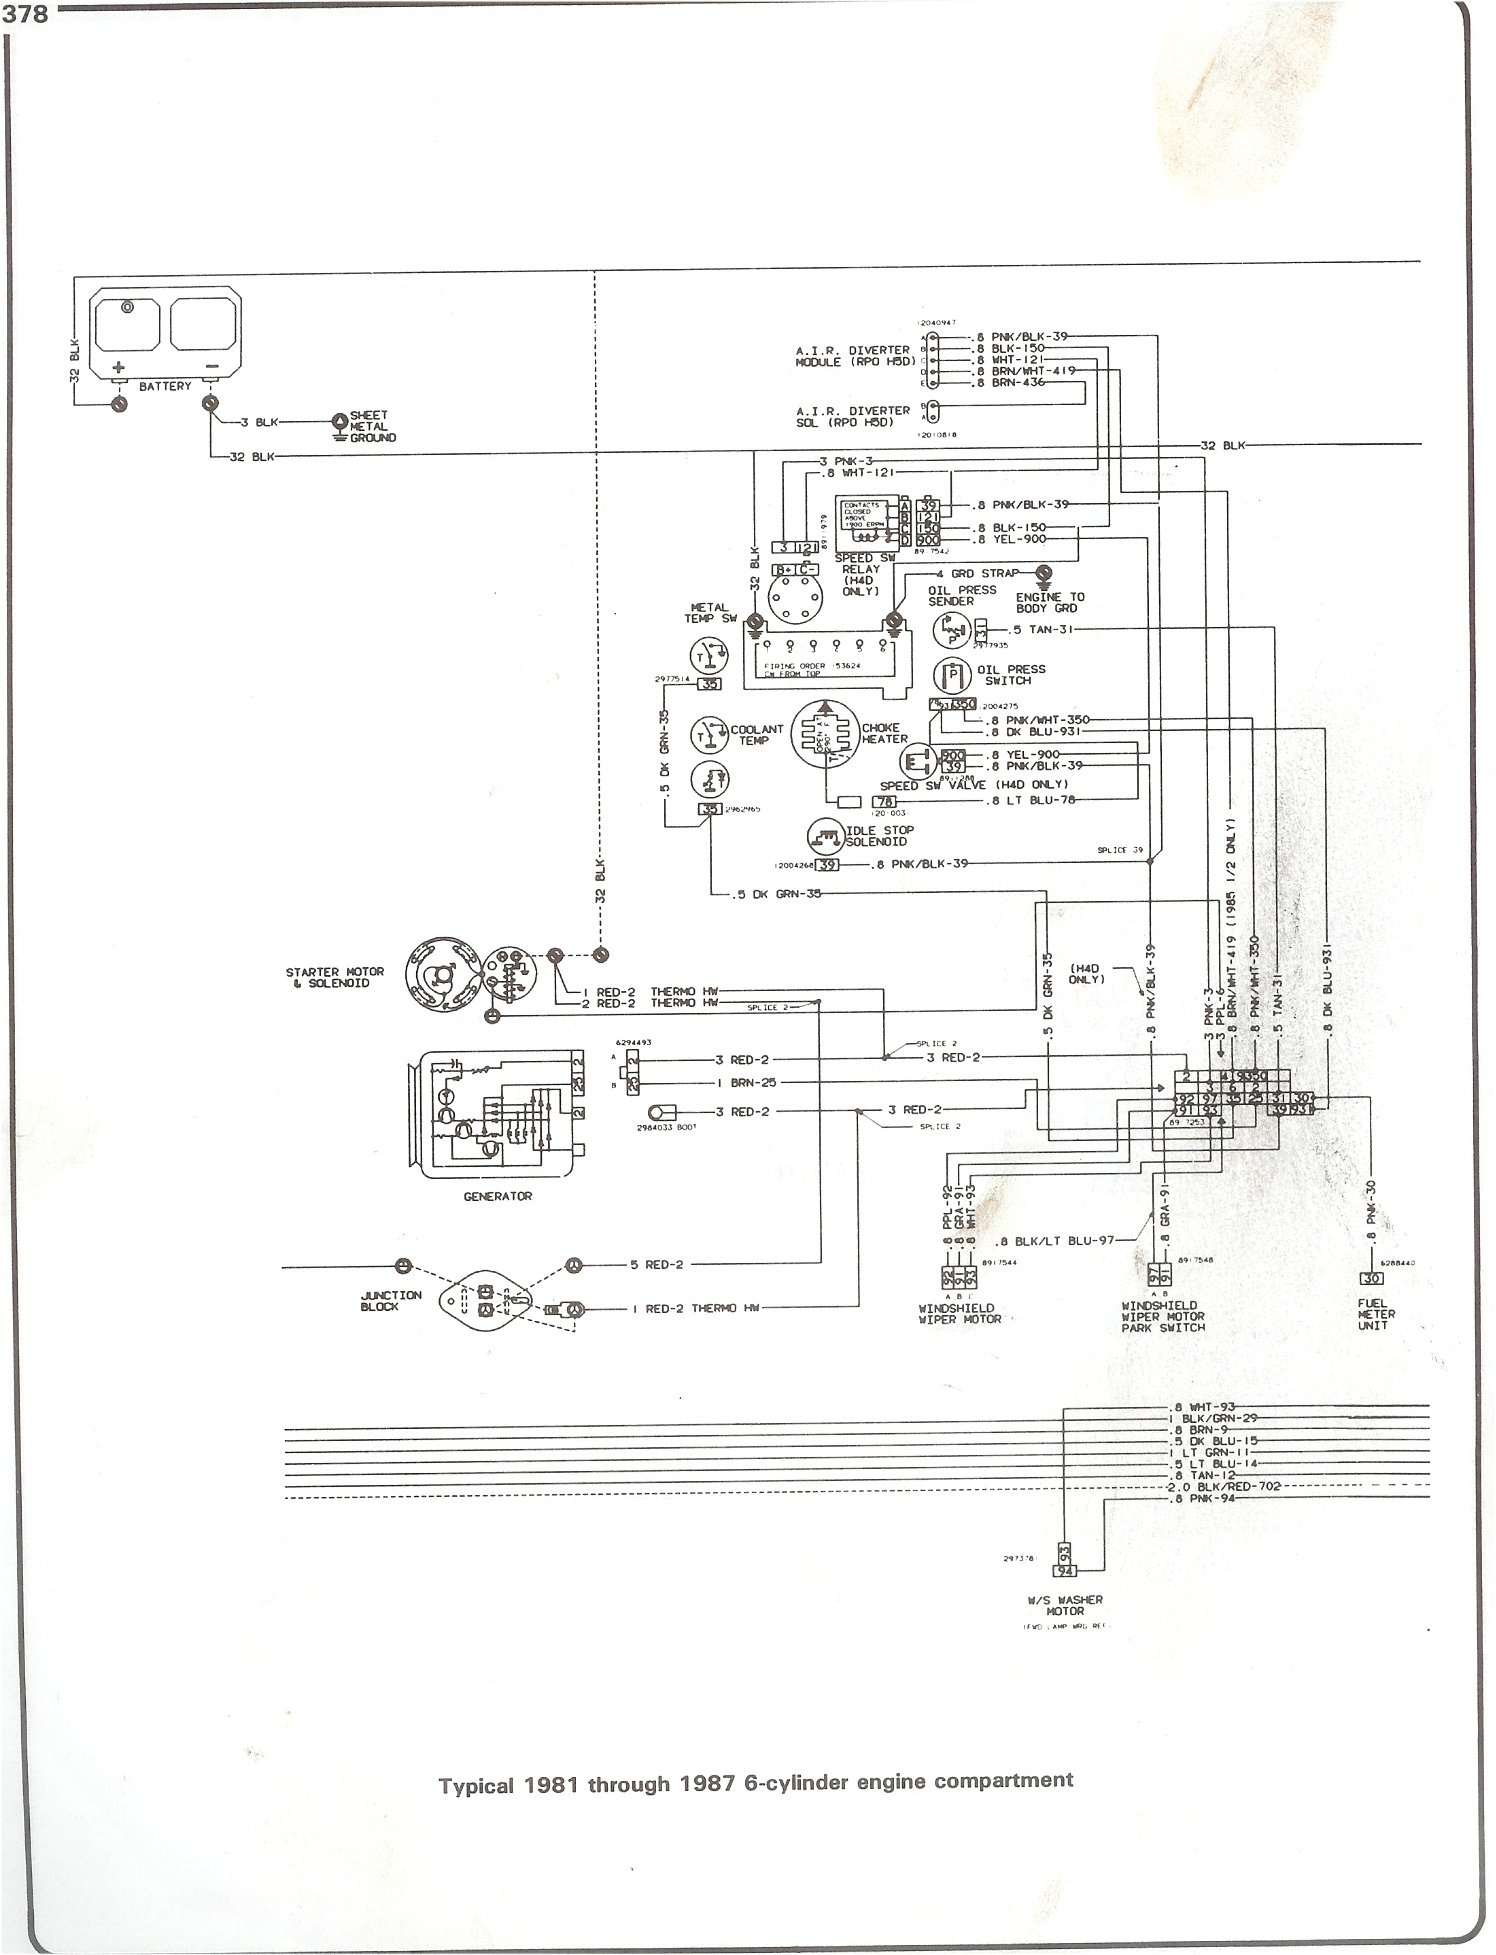 1981 Chevy Truck Wire Harness Diagram Manual E Books 85 Monte Carlo Wiring Free Picture Simple Diagramwiring On 76 Data